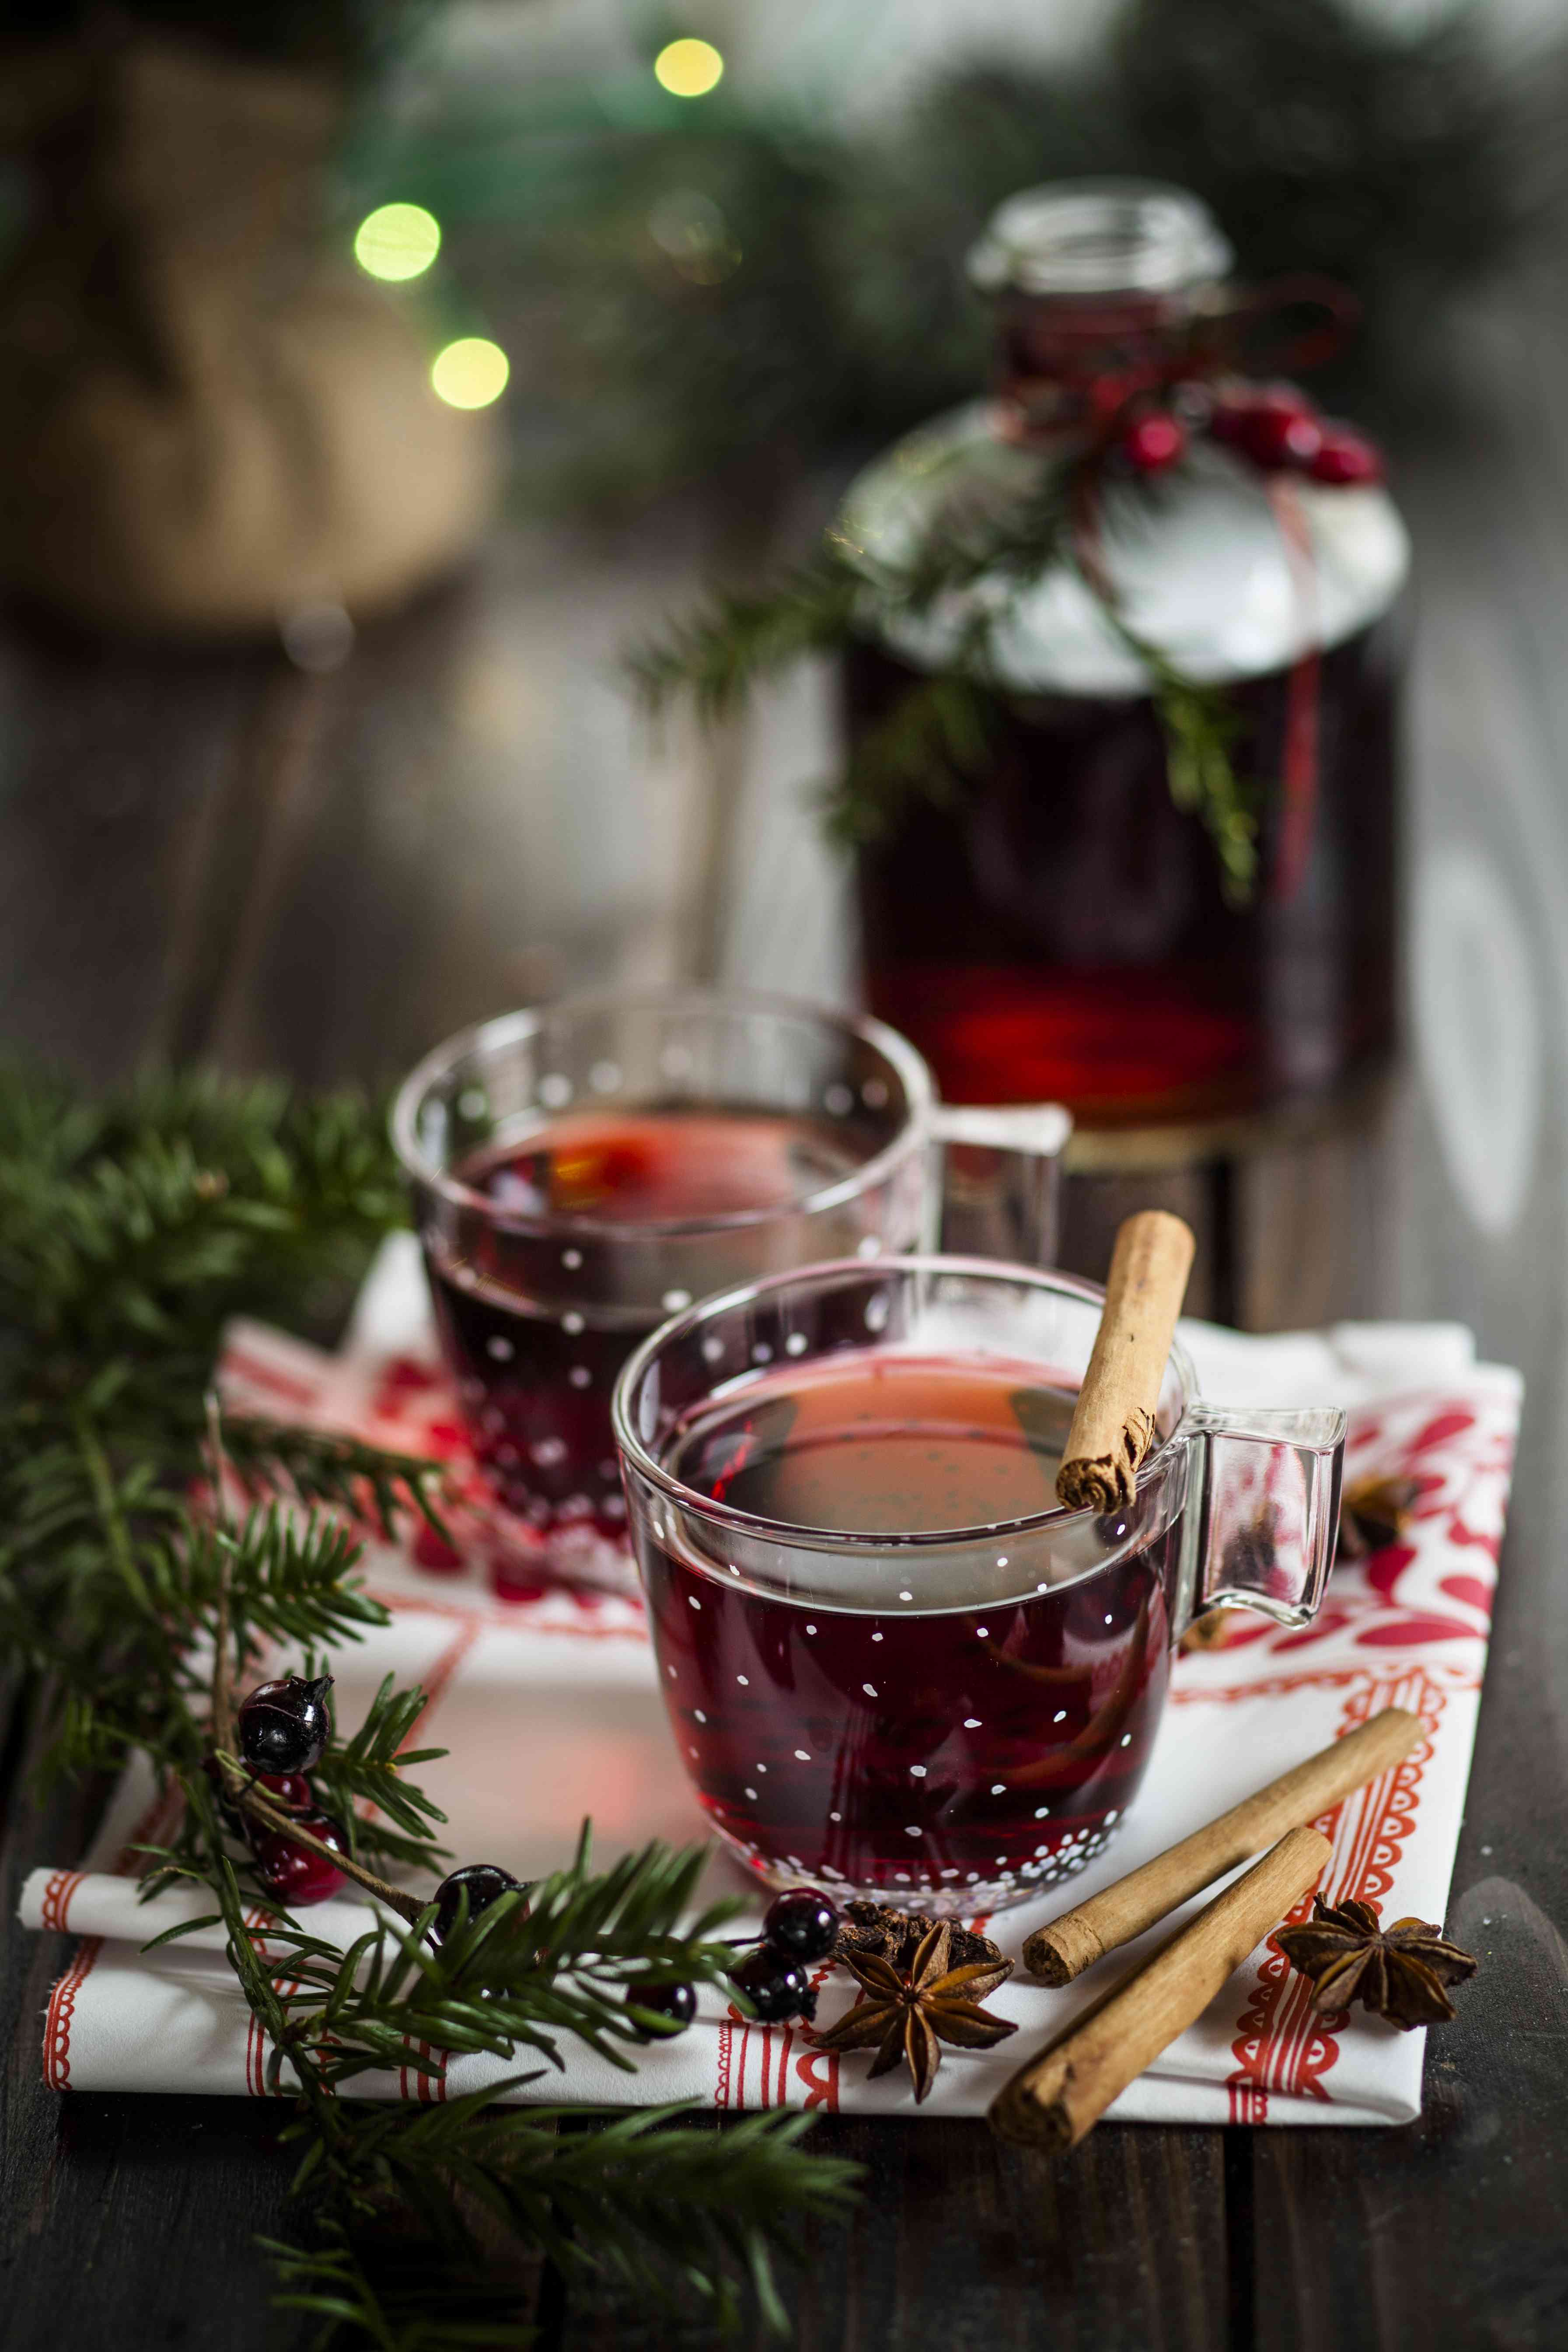 Glasses of mulled wine, spices, and fir branch